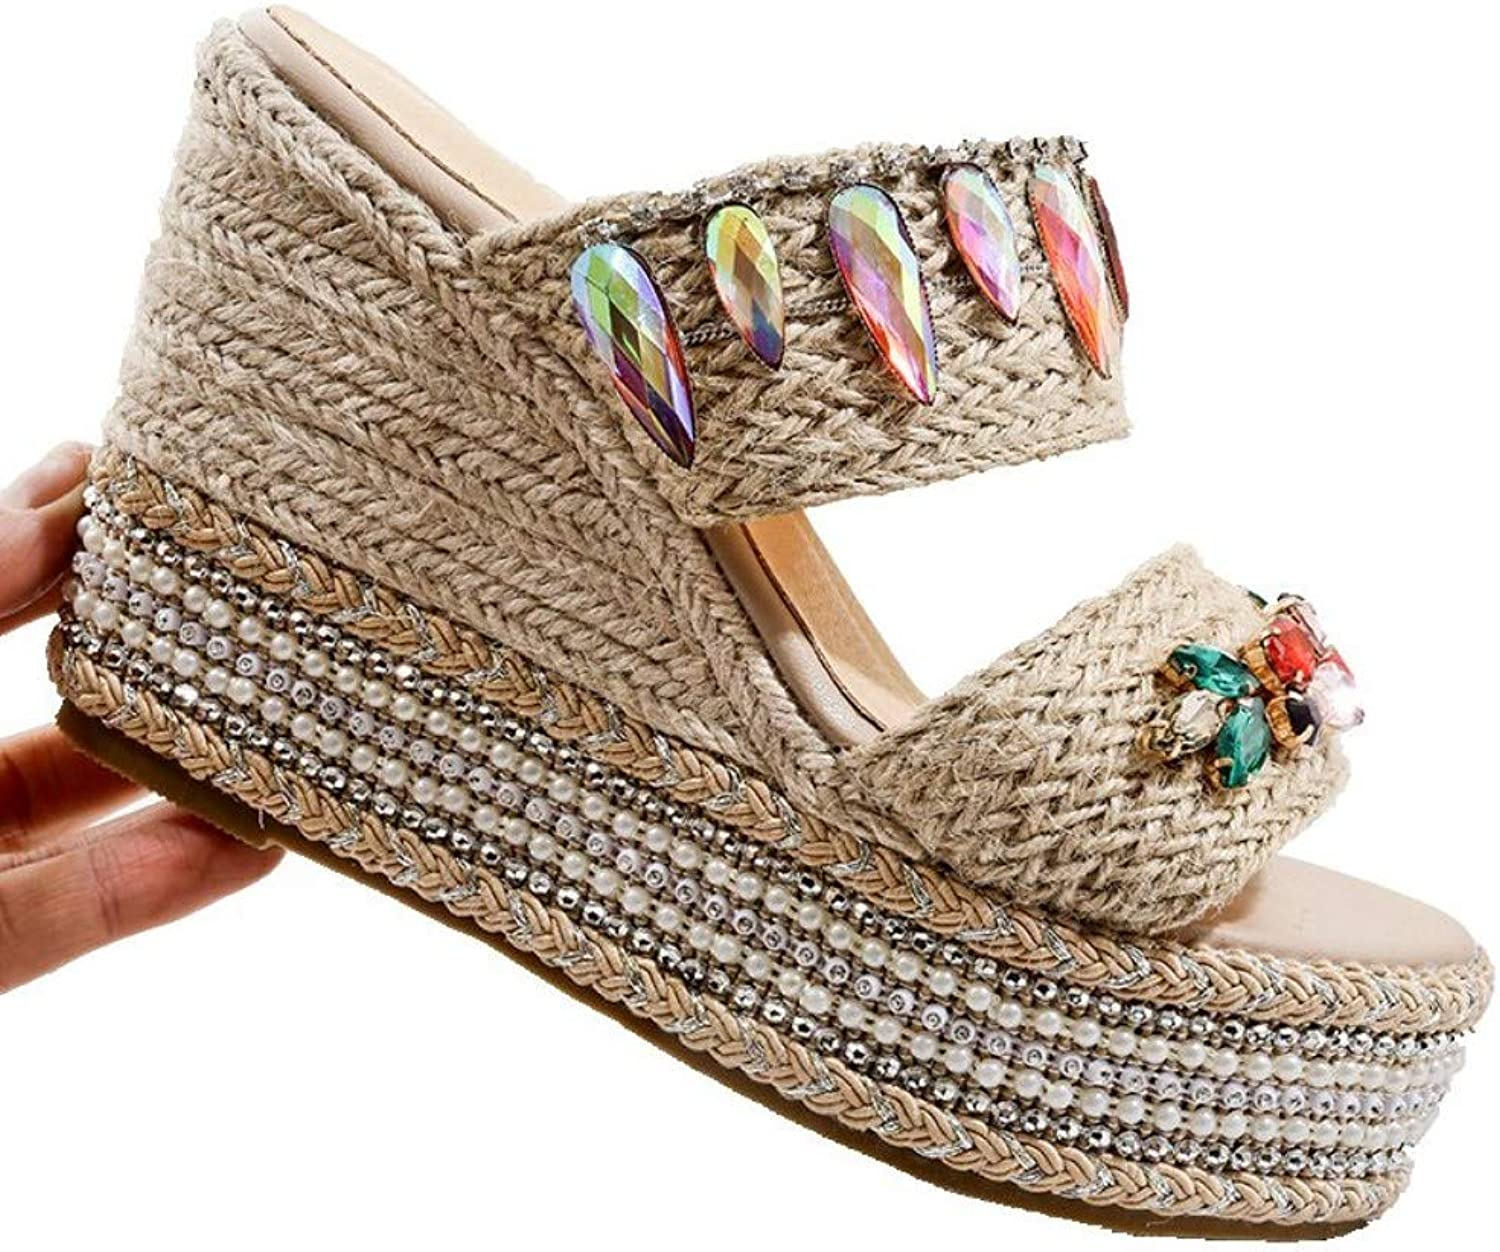 JQfashion Women's High-Heeled Sandals Diamond Nailed Beads Hemp Rope Slippers Sandy Beach Slippers with Thick Soles